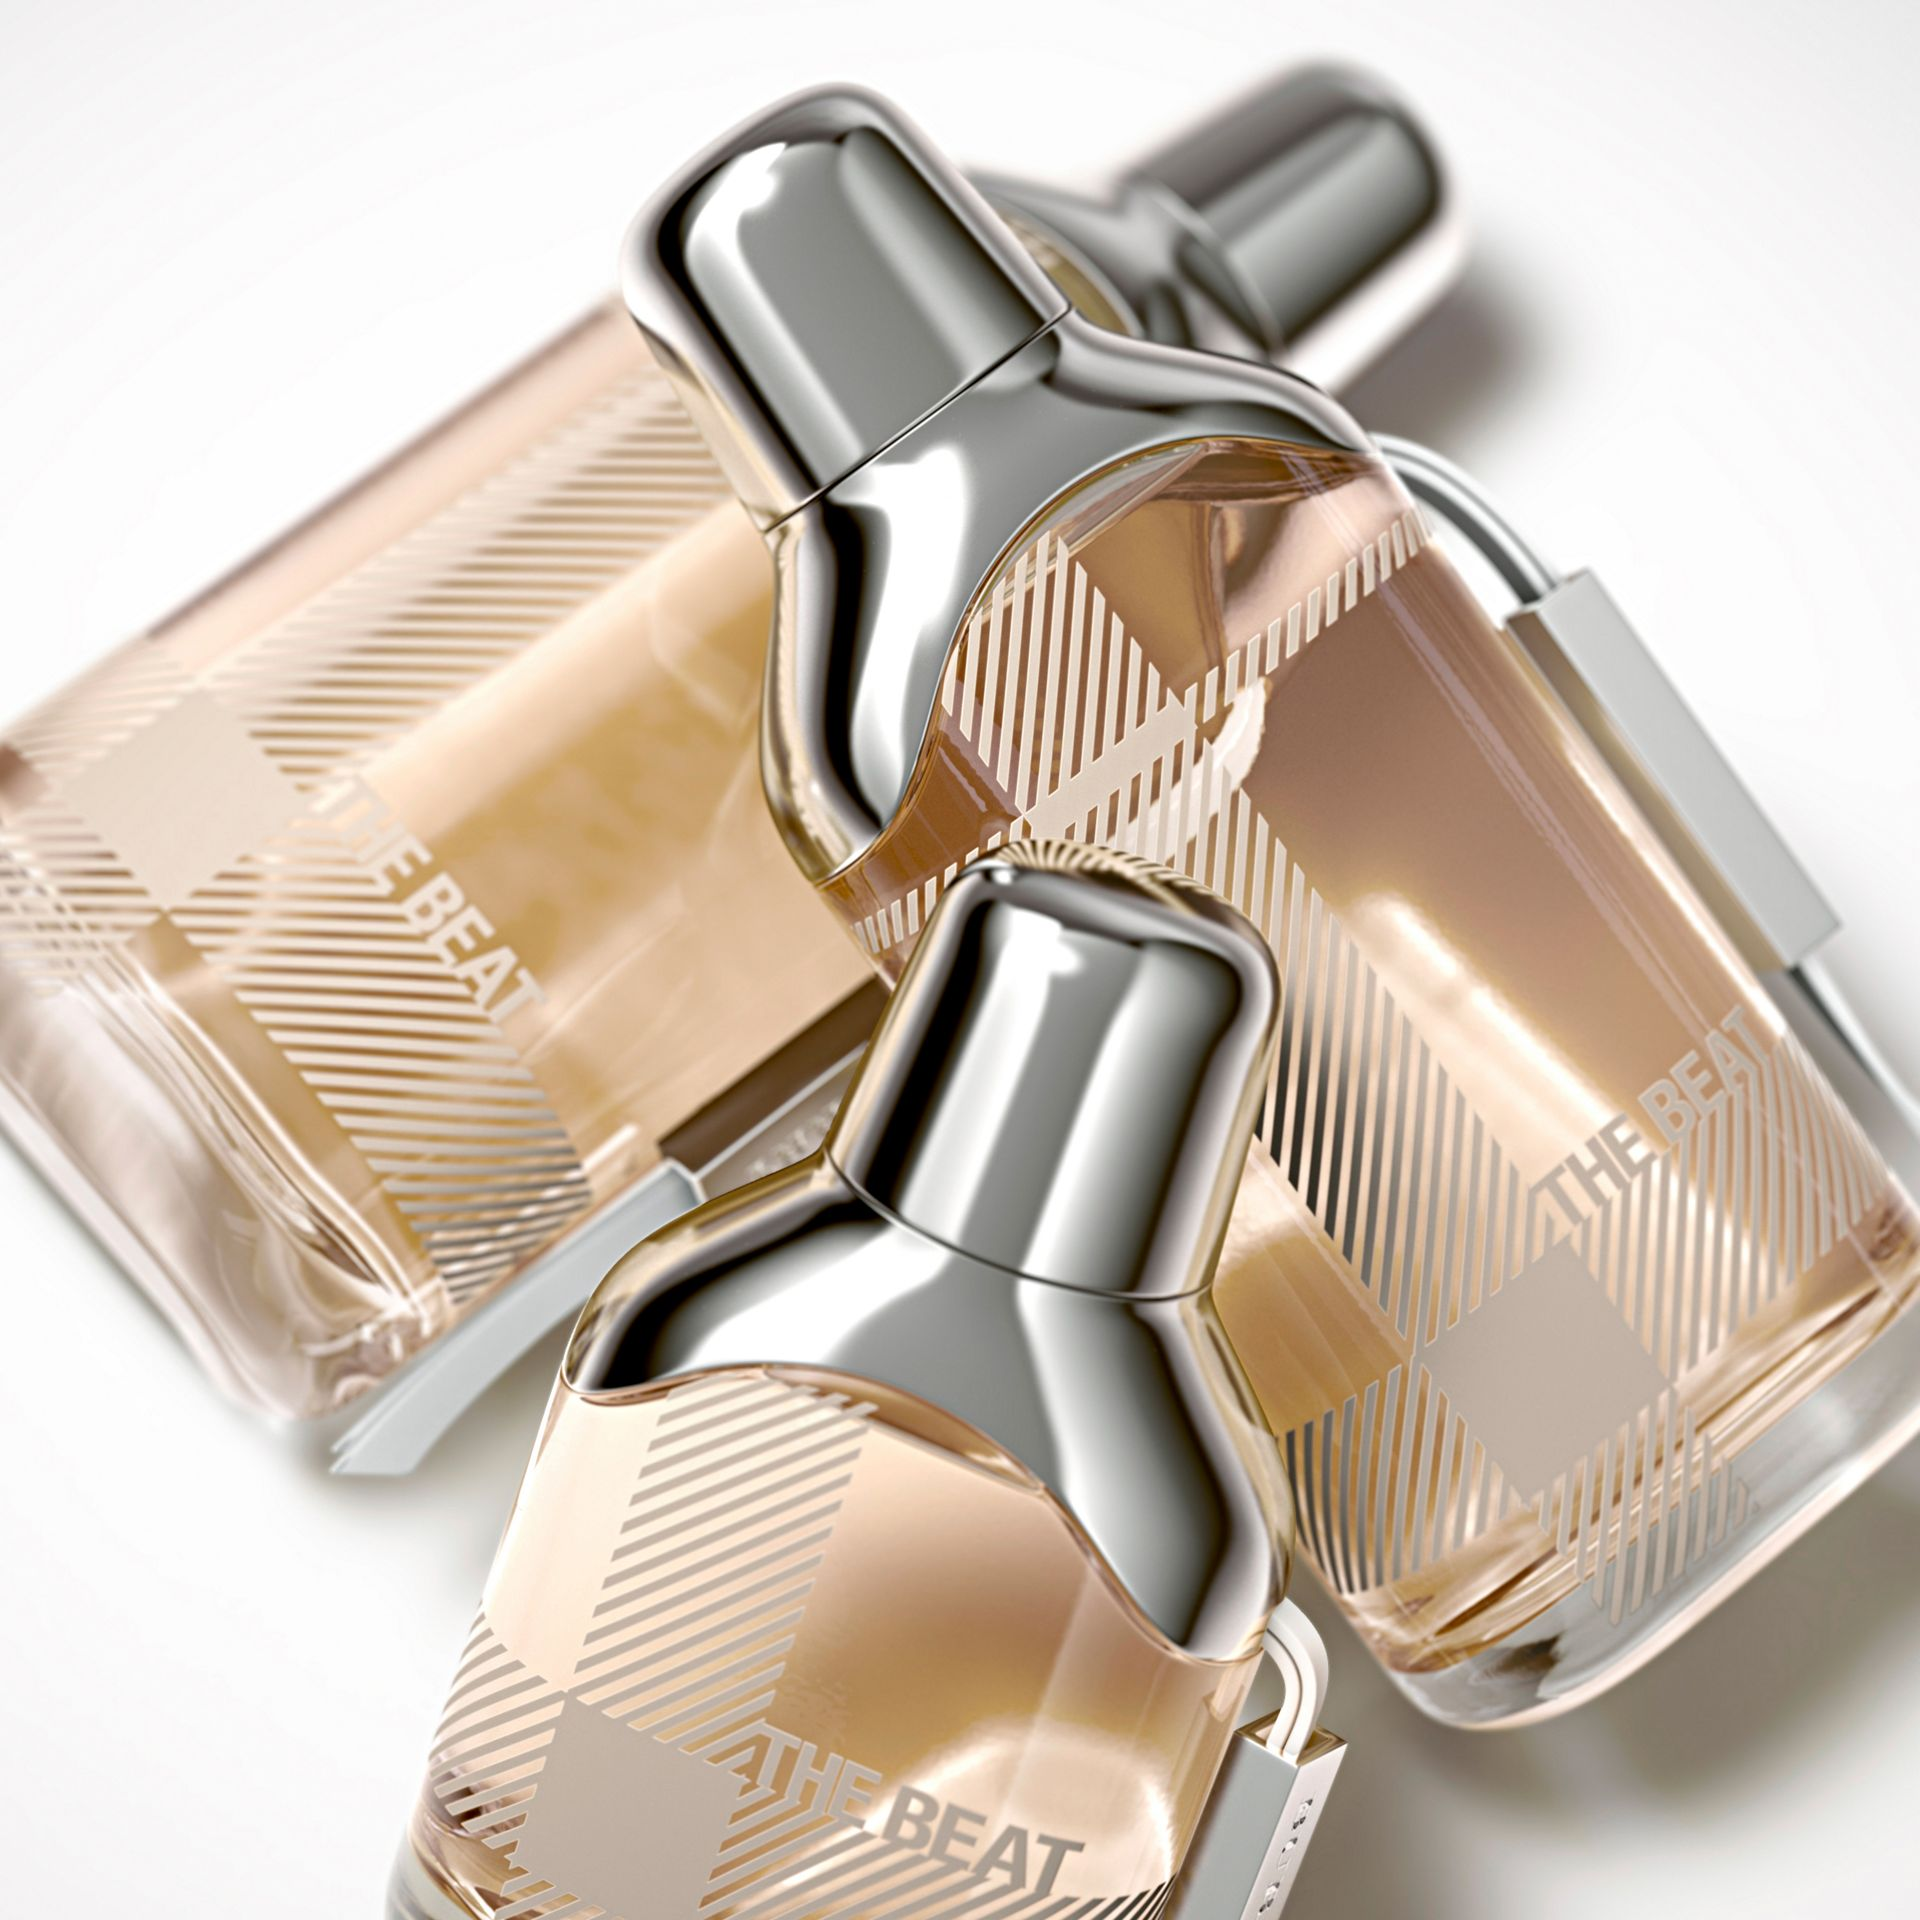 Burberry The Beat Eau de Parfum 75 ml - Galerie-Bild 2